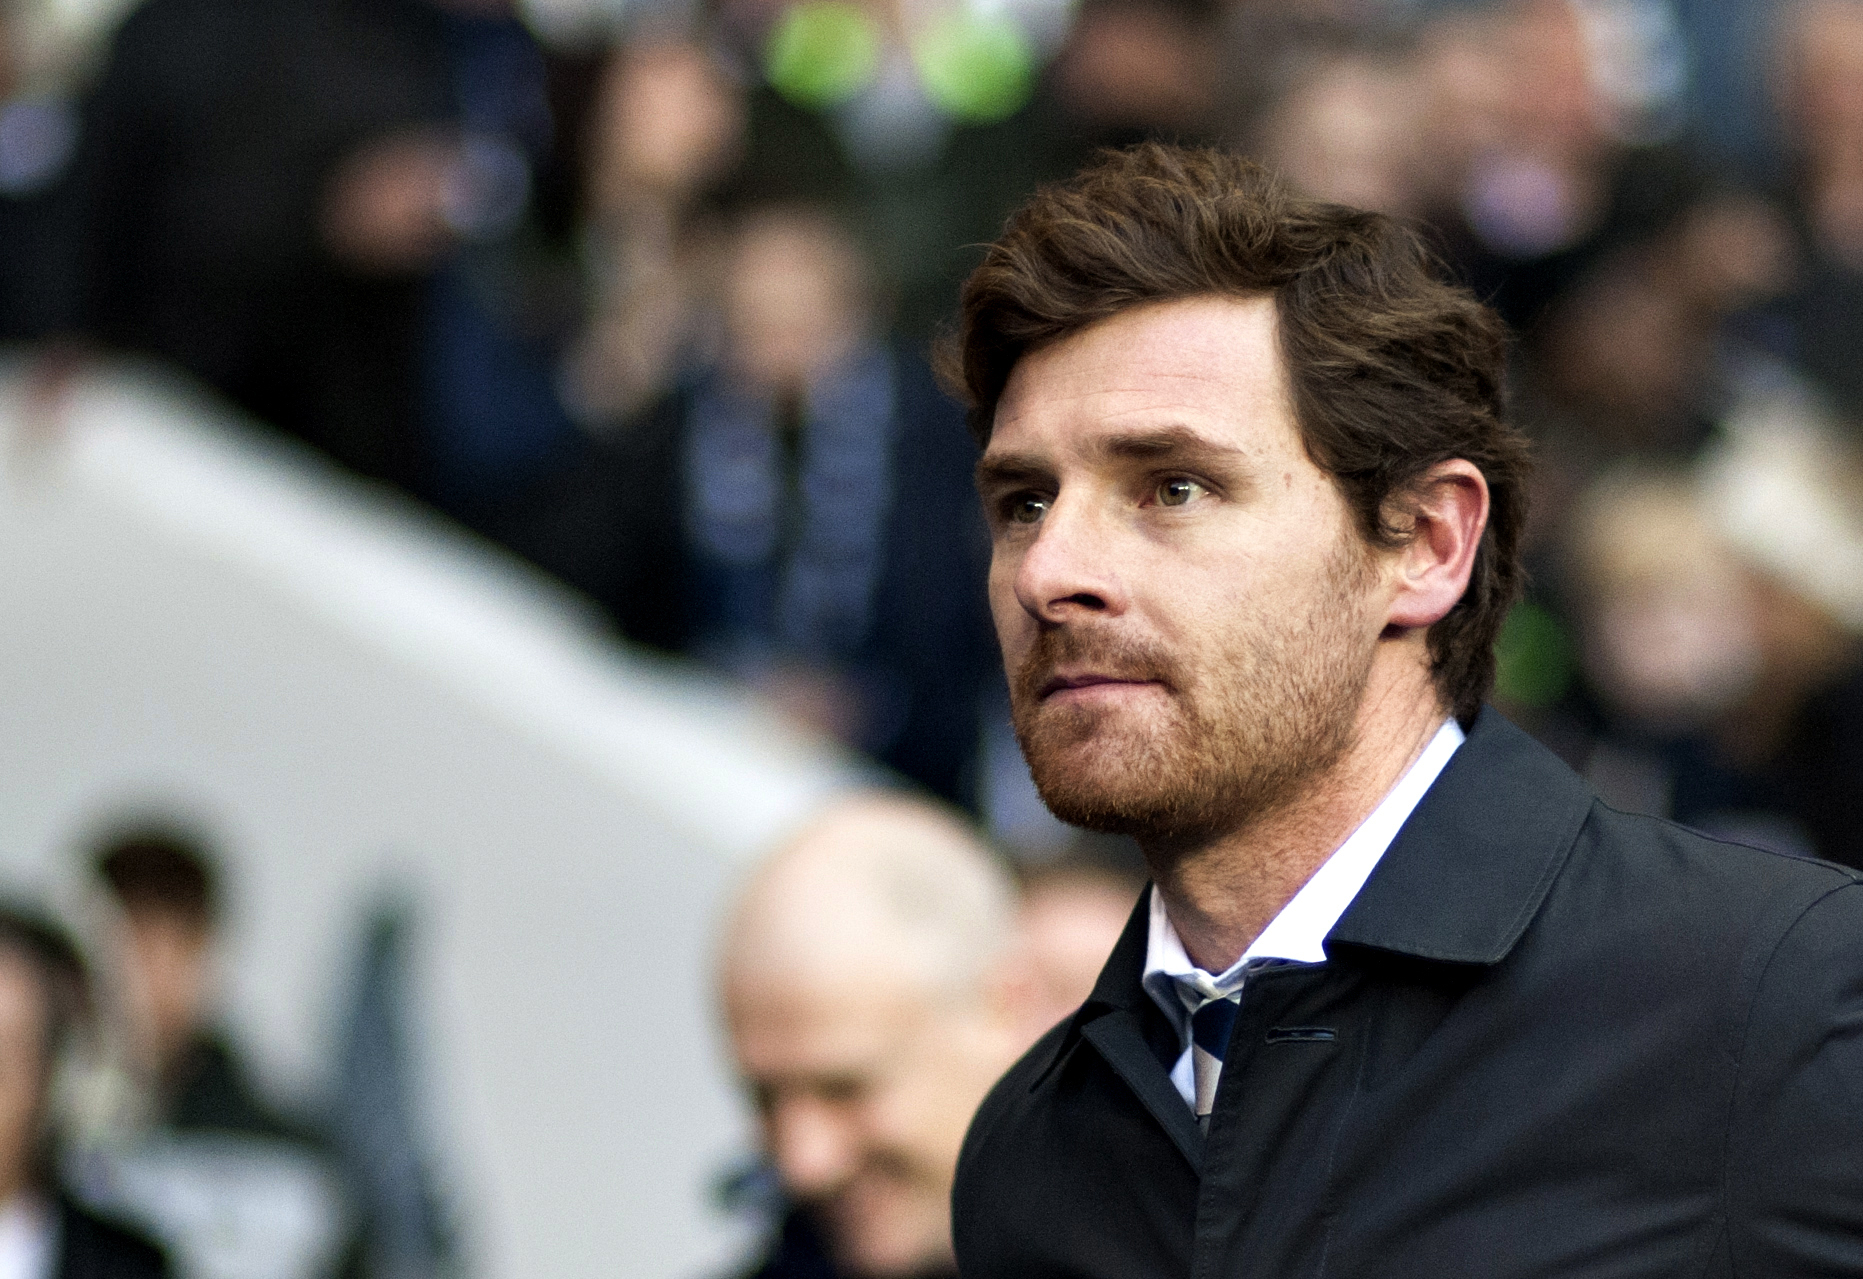 Andre Villas-Boas acknowledged he made mistakes during his time at Chelsea (Picture: AP)